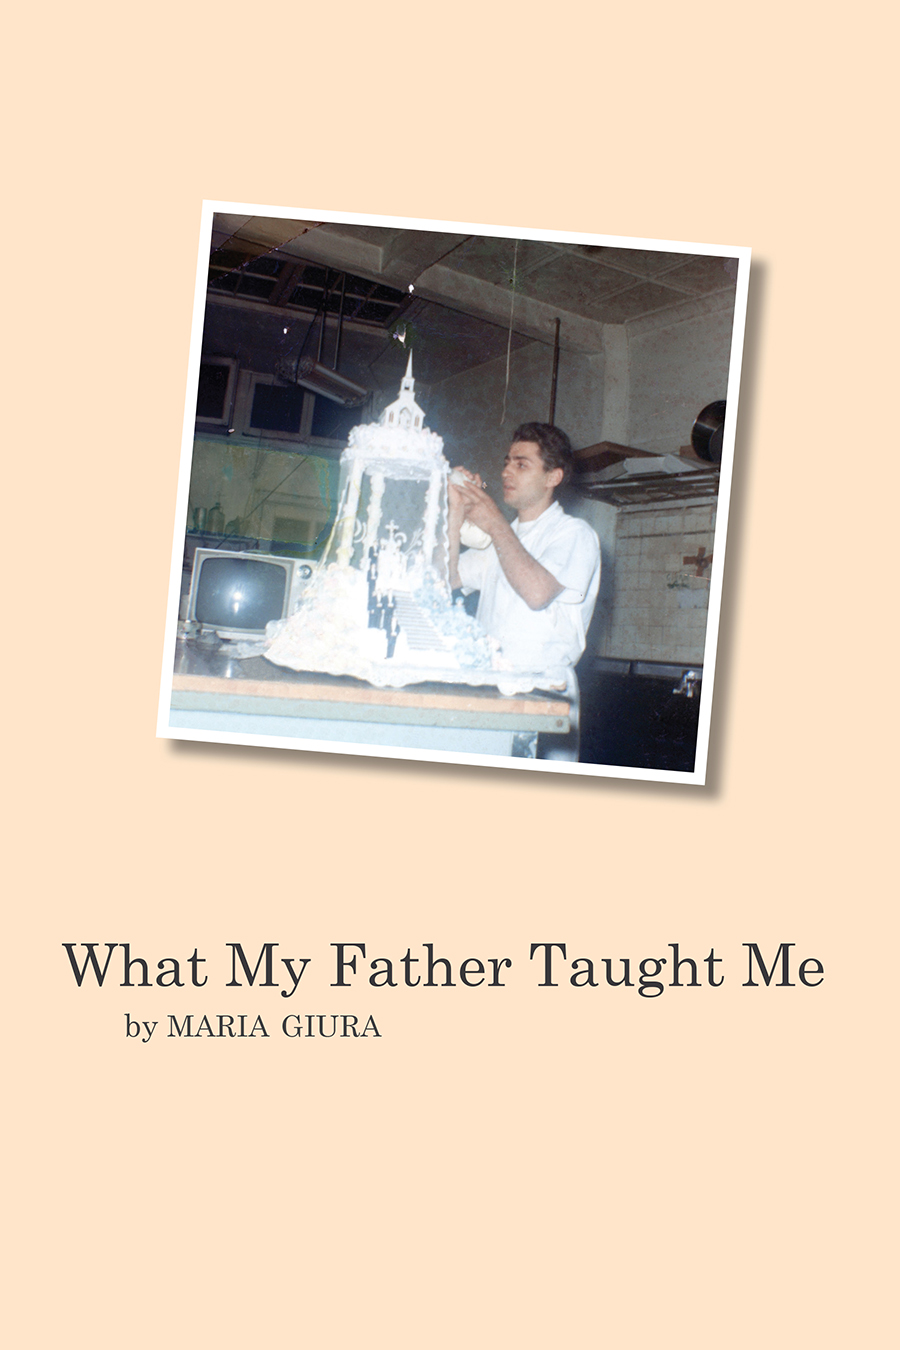 What My Father Taught Me